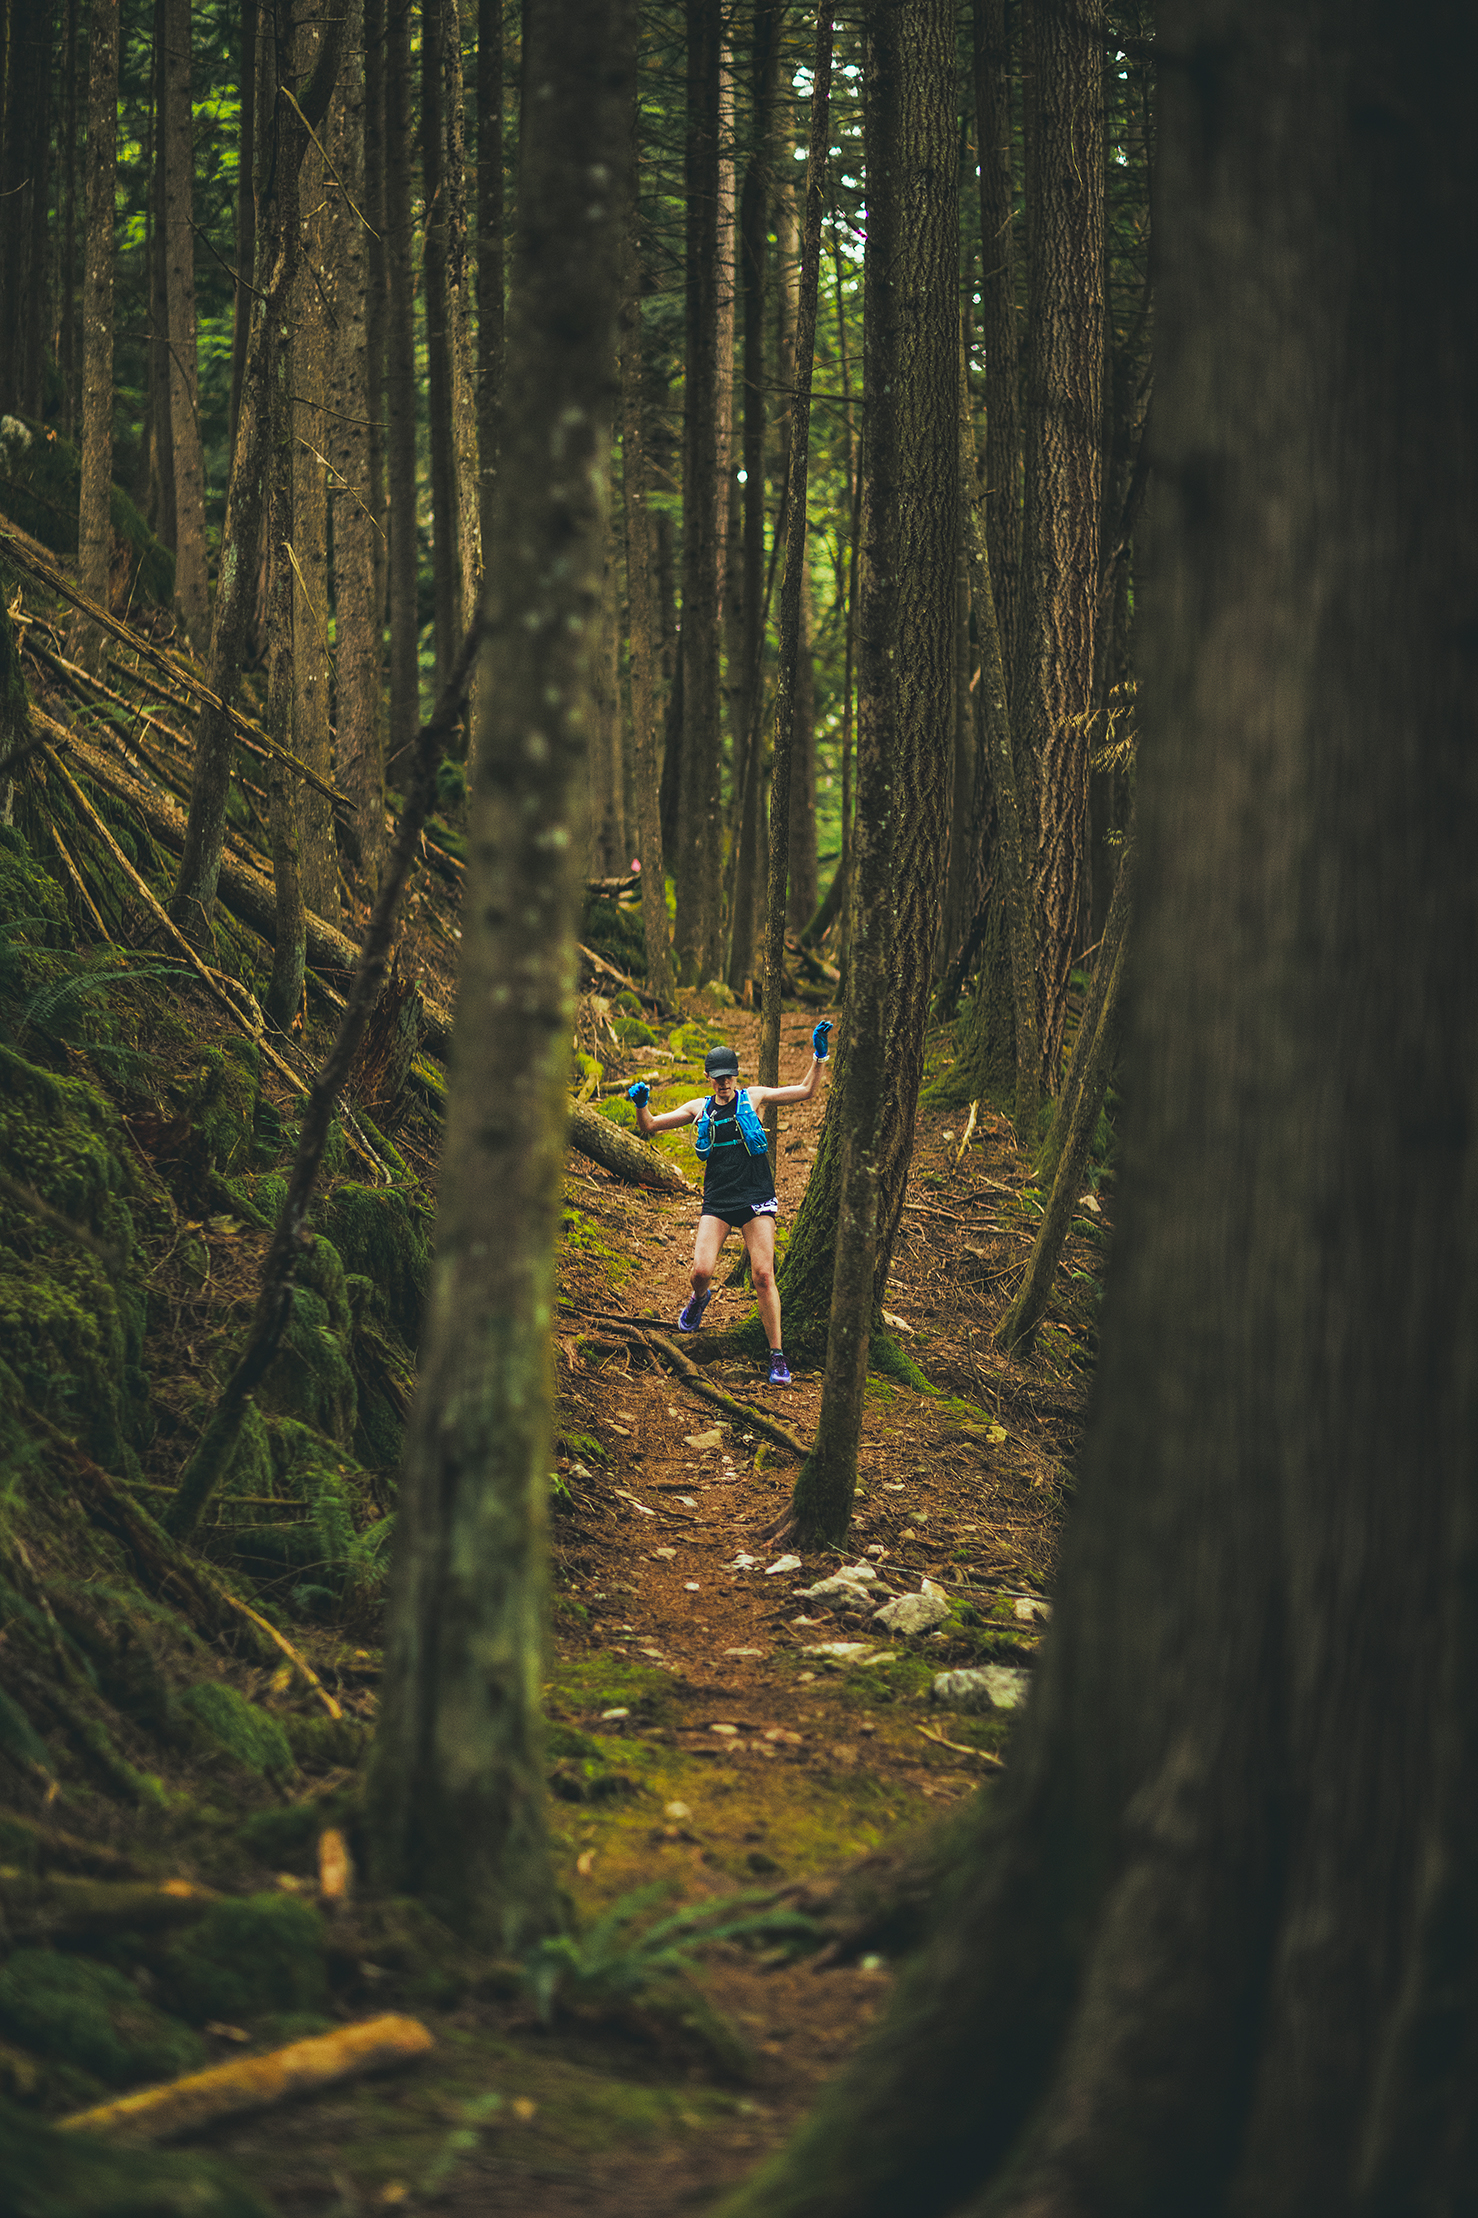 Fraser Valley Trail Races - Bear Mountain - IMG_2191 by Brice Ferre Studio - Vancouver Portrait Adventure and Athlete Photographer.jpg